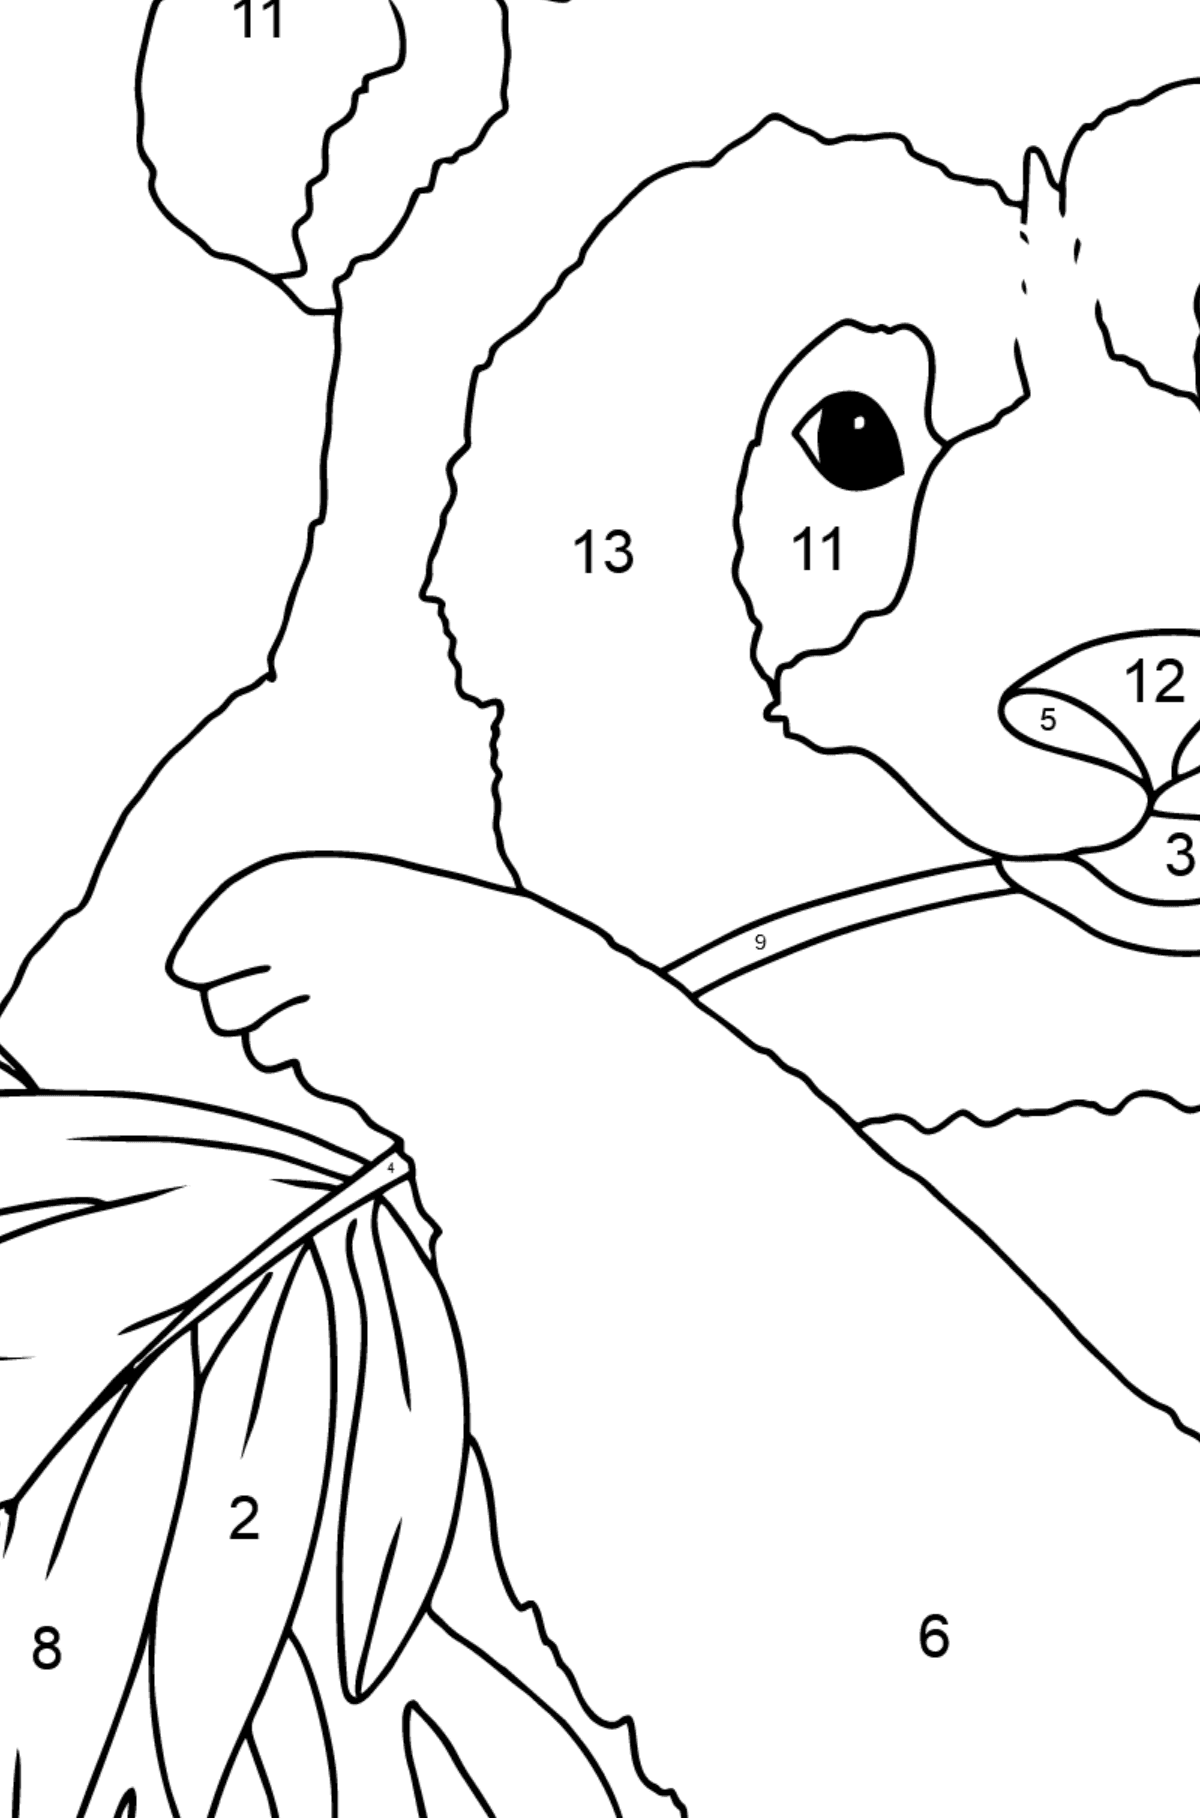 Coloring Page - A Panda is Eating Bamboo Leaves - Coloring by Numbers for Kids